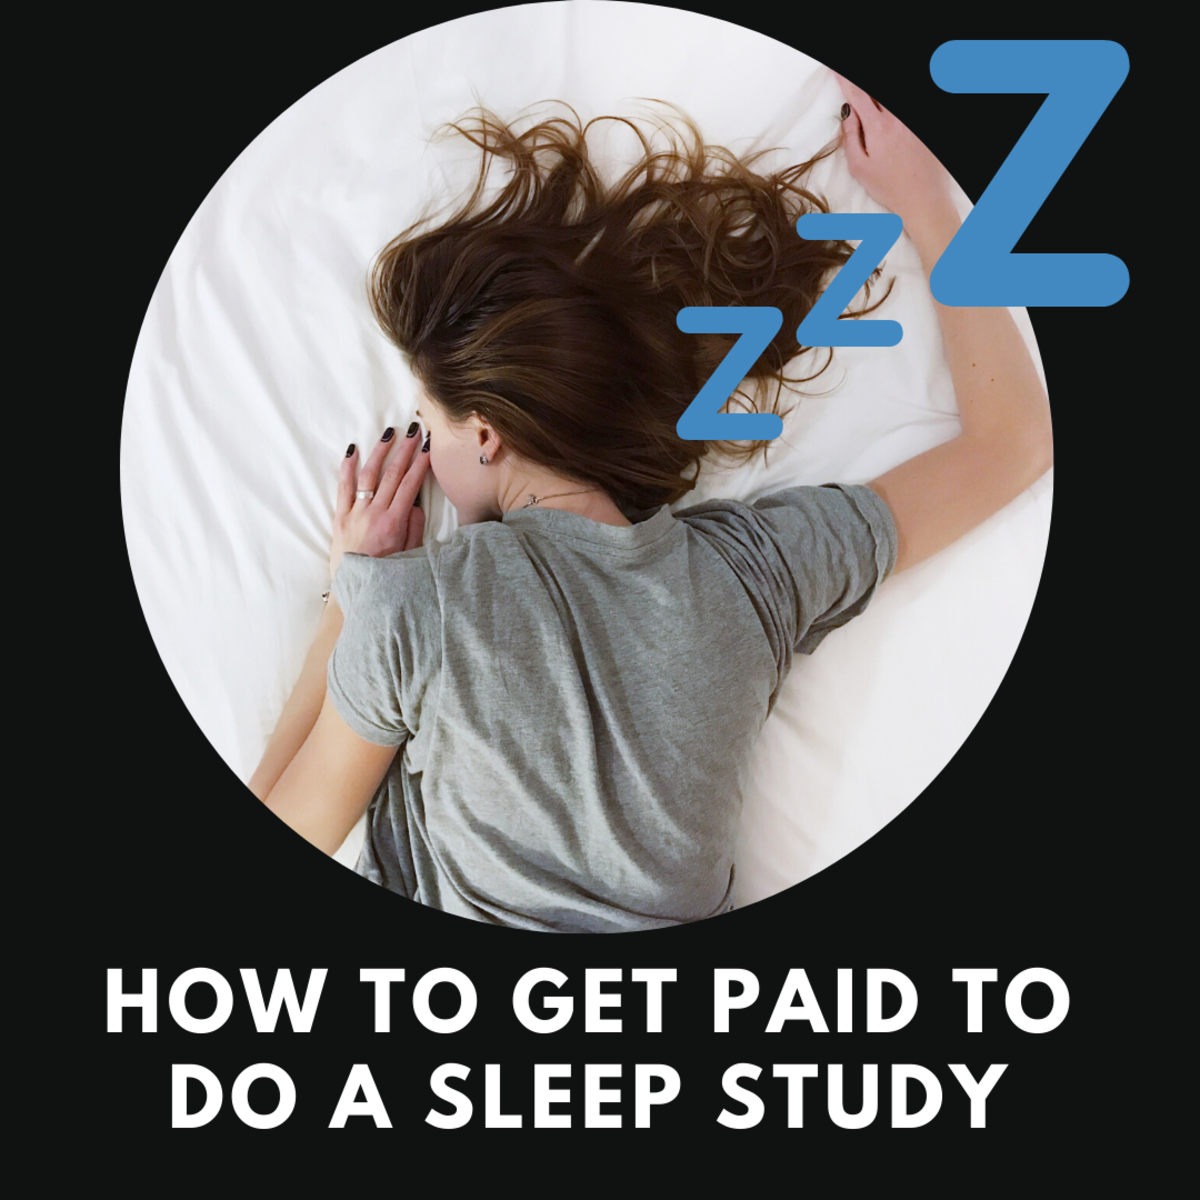 Here are some useful tips for those who are looking to make some extra money doing a paid sleep study.